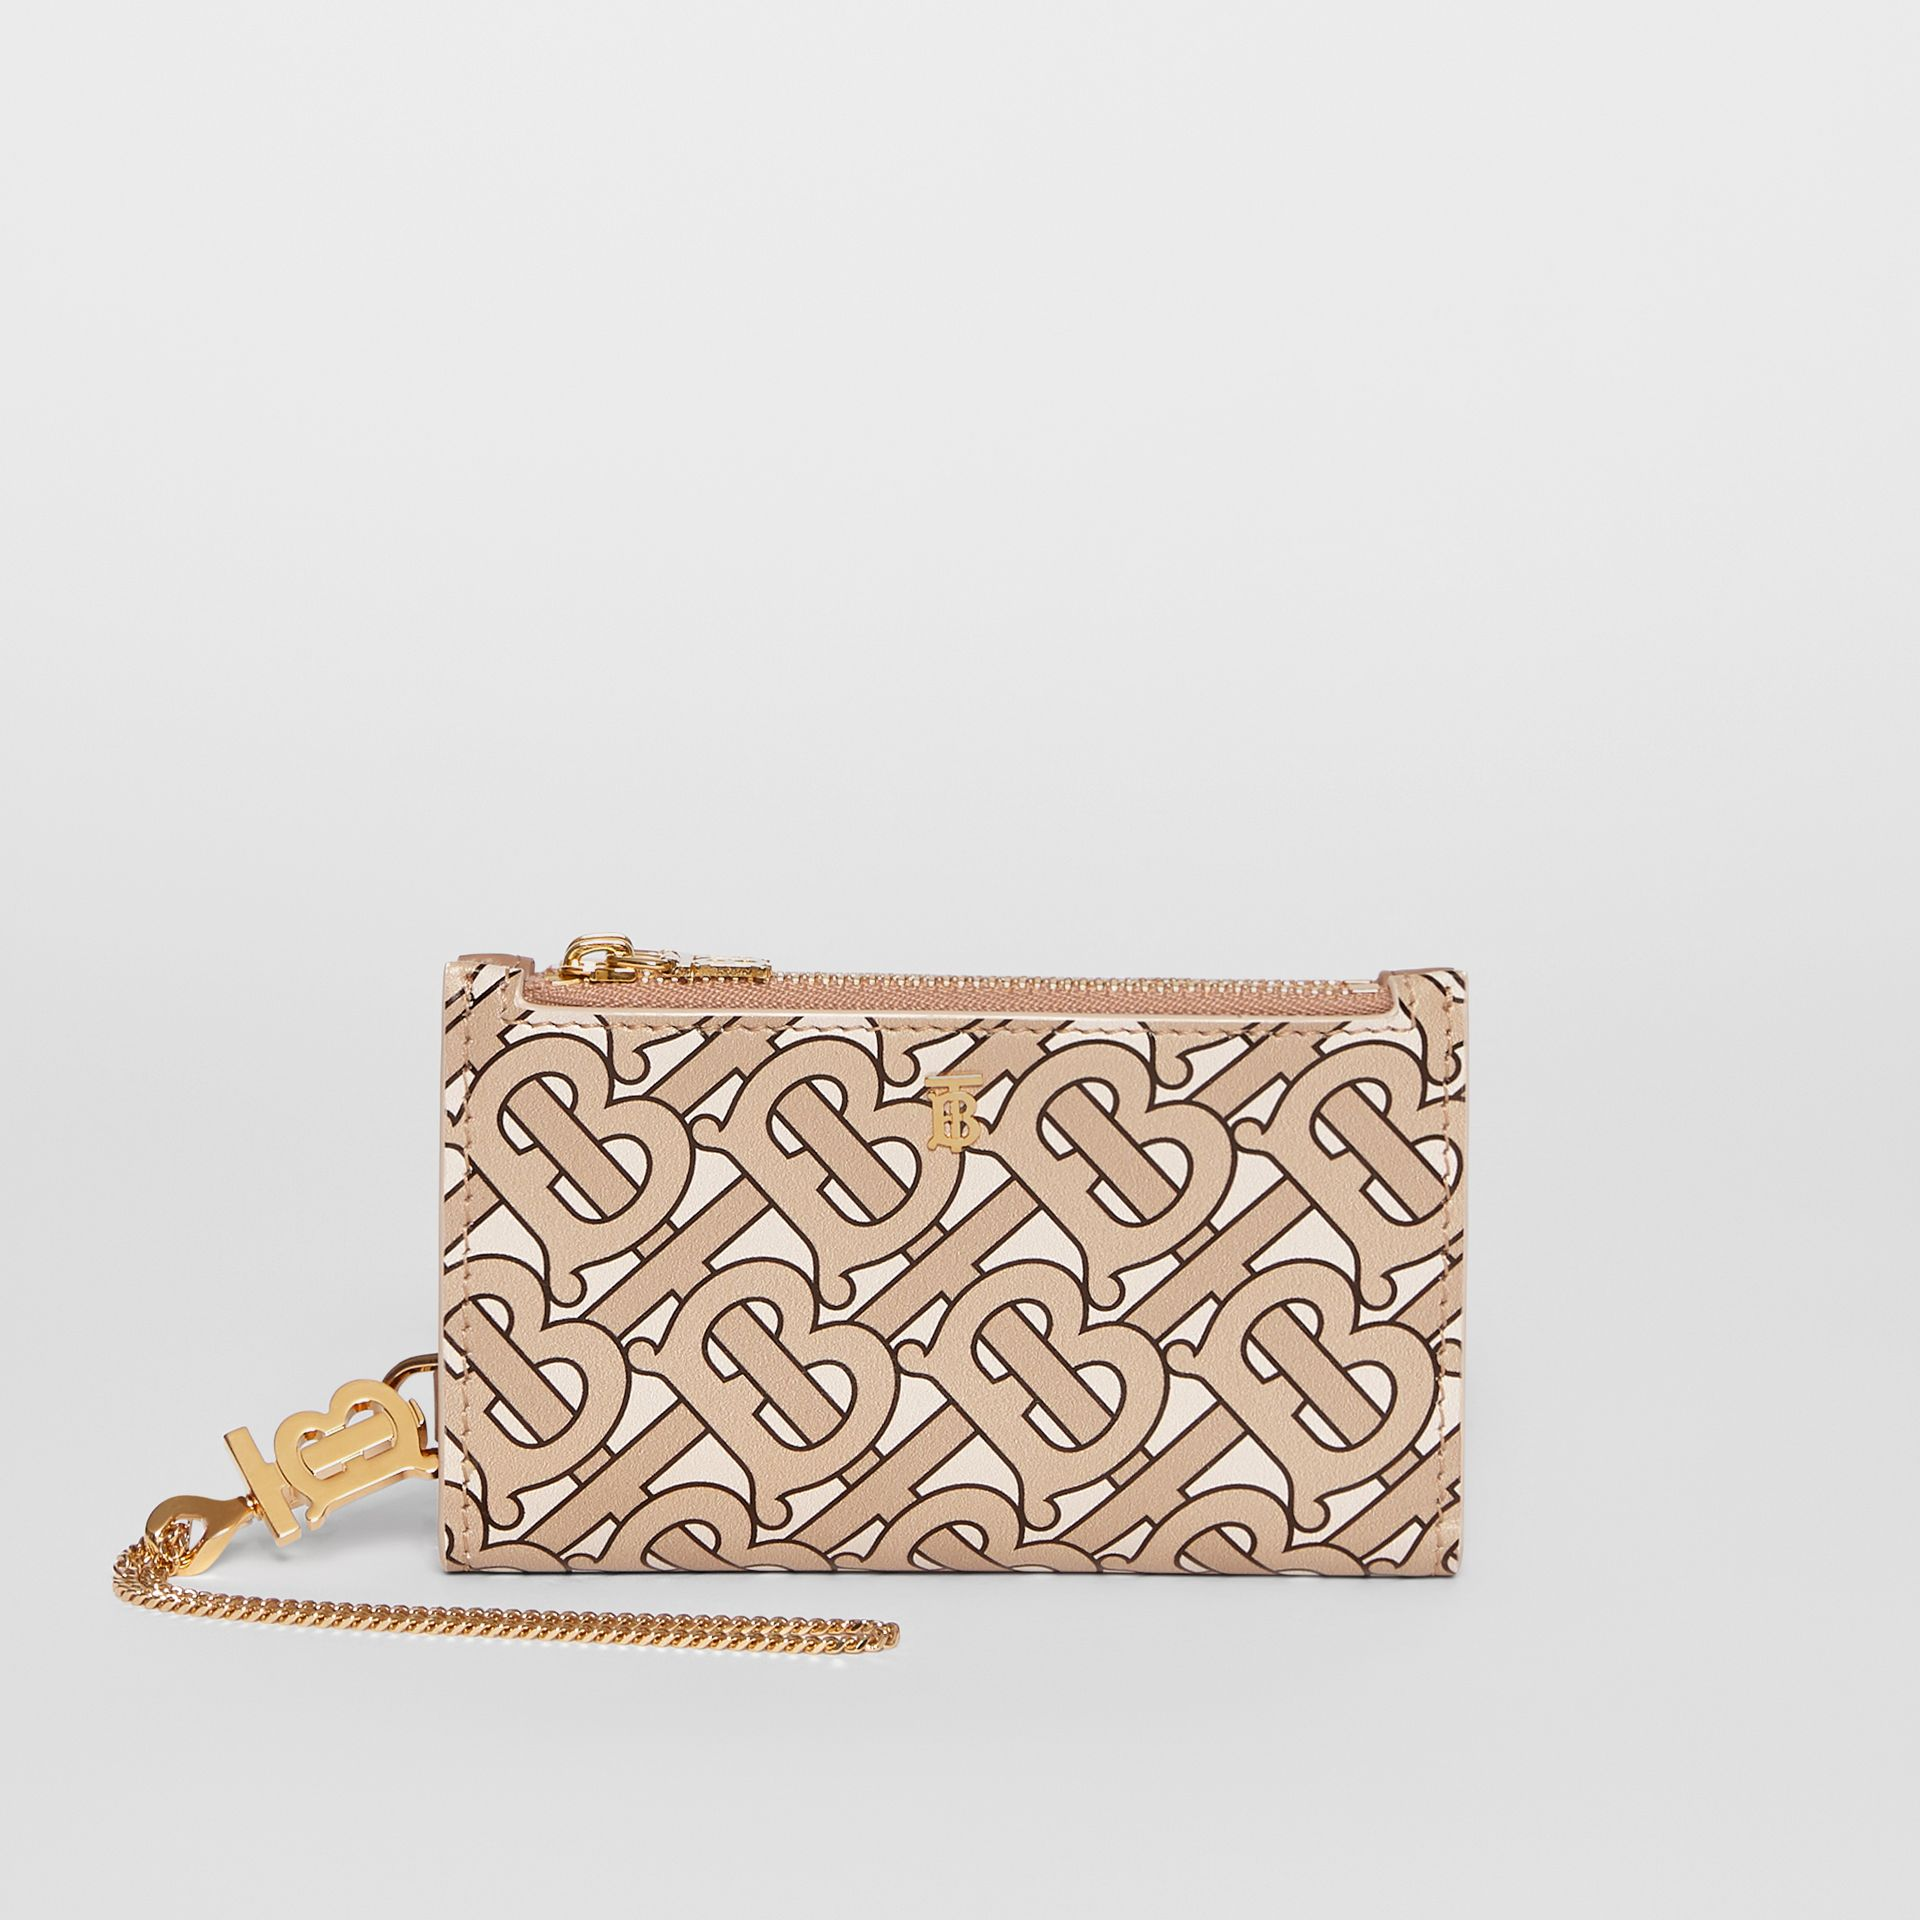 Monogram Motif Leather Wallet with Detachable Strap in Beige - Women | Burberry - gallery image 6